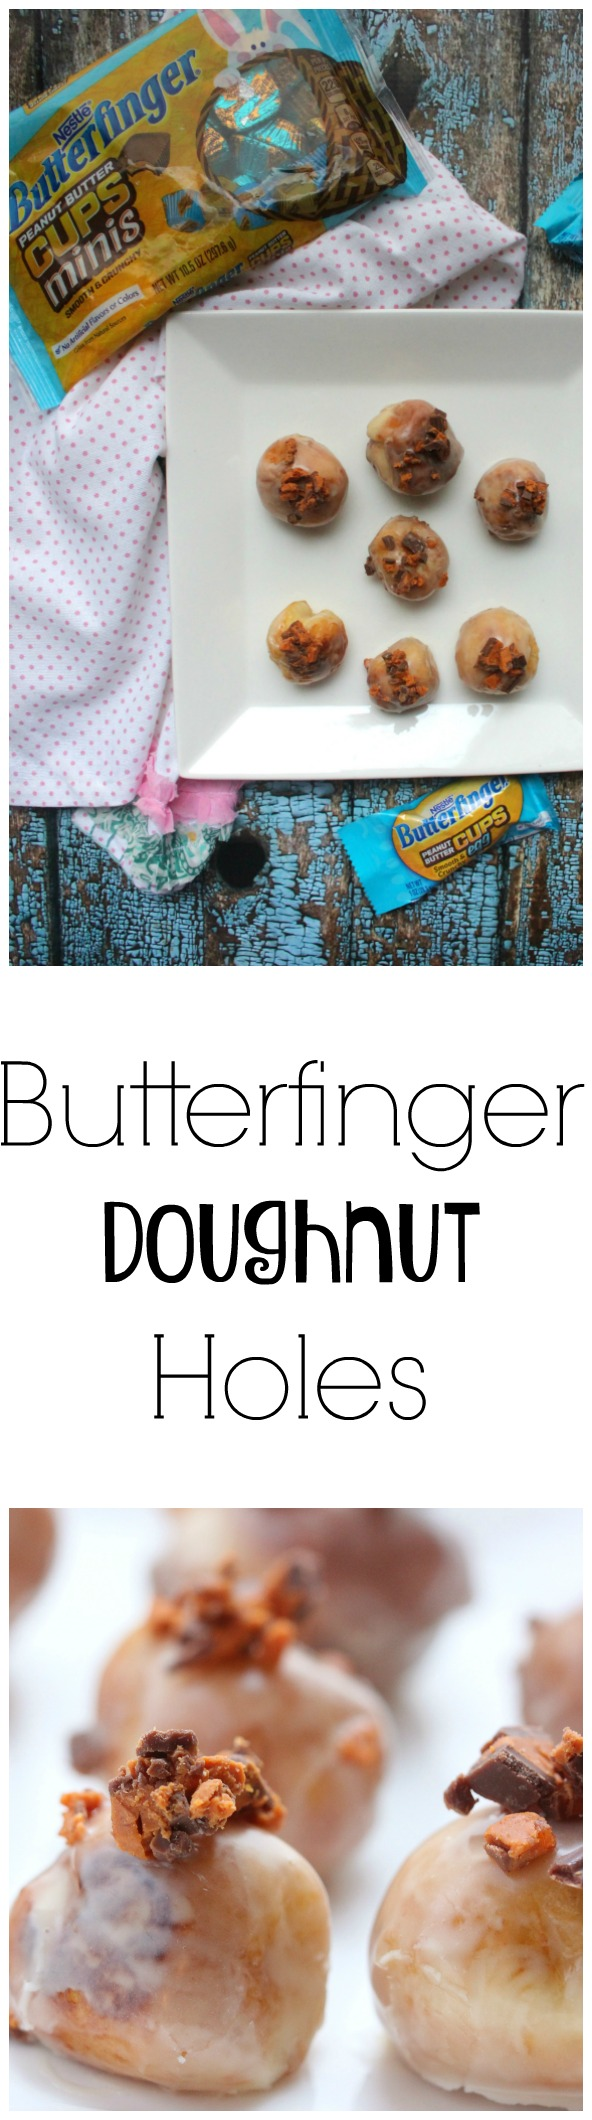 Butterfinger FINAL